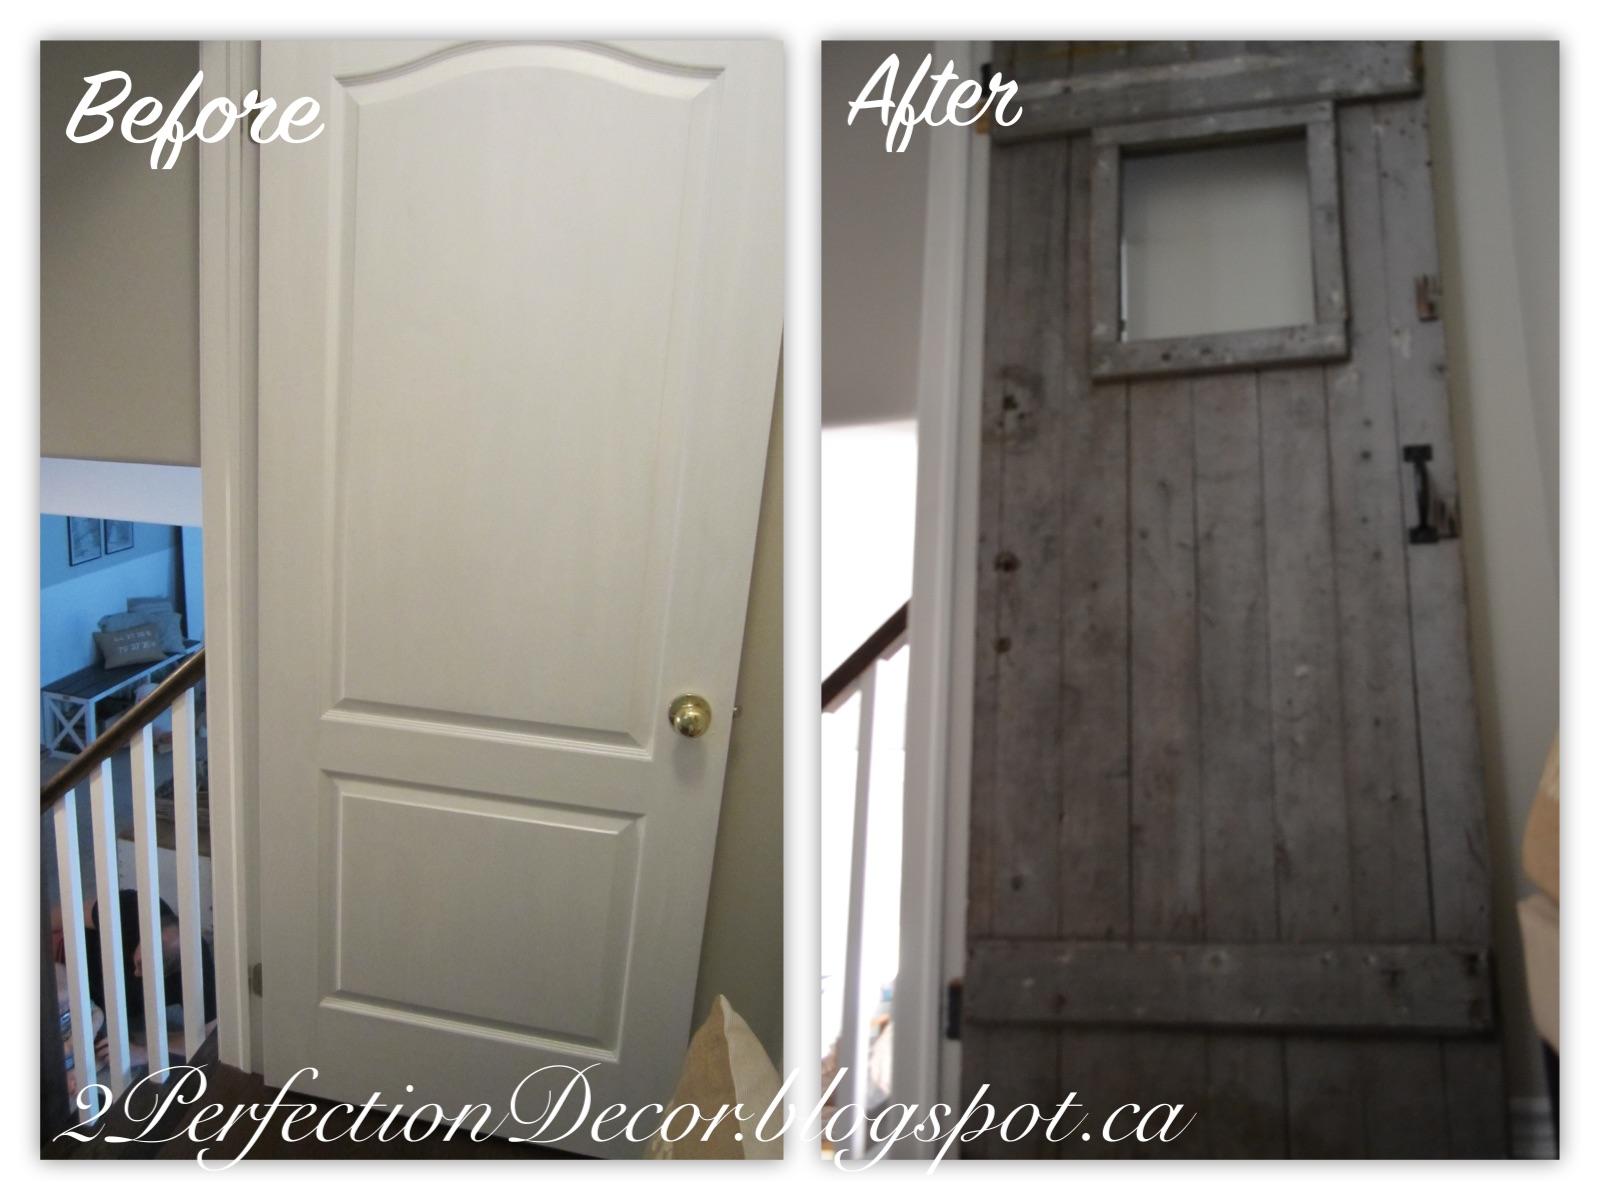 2perfection Decor Added Another Antique Barn Door